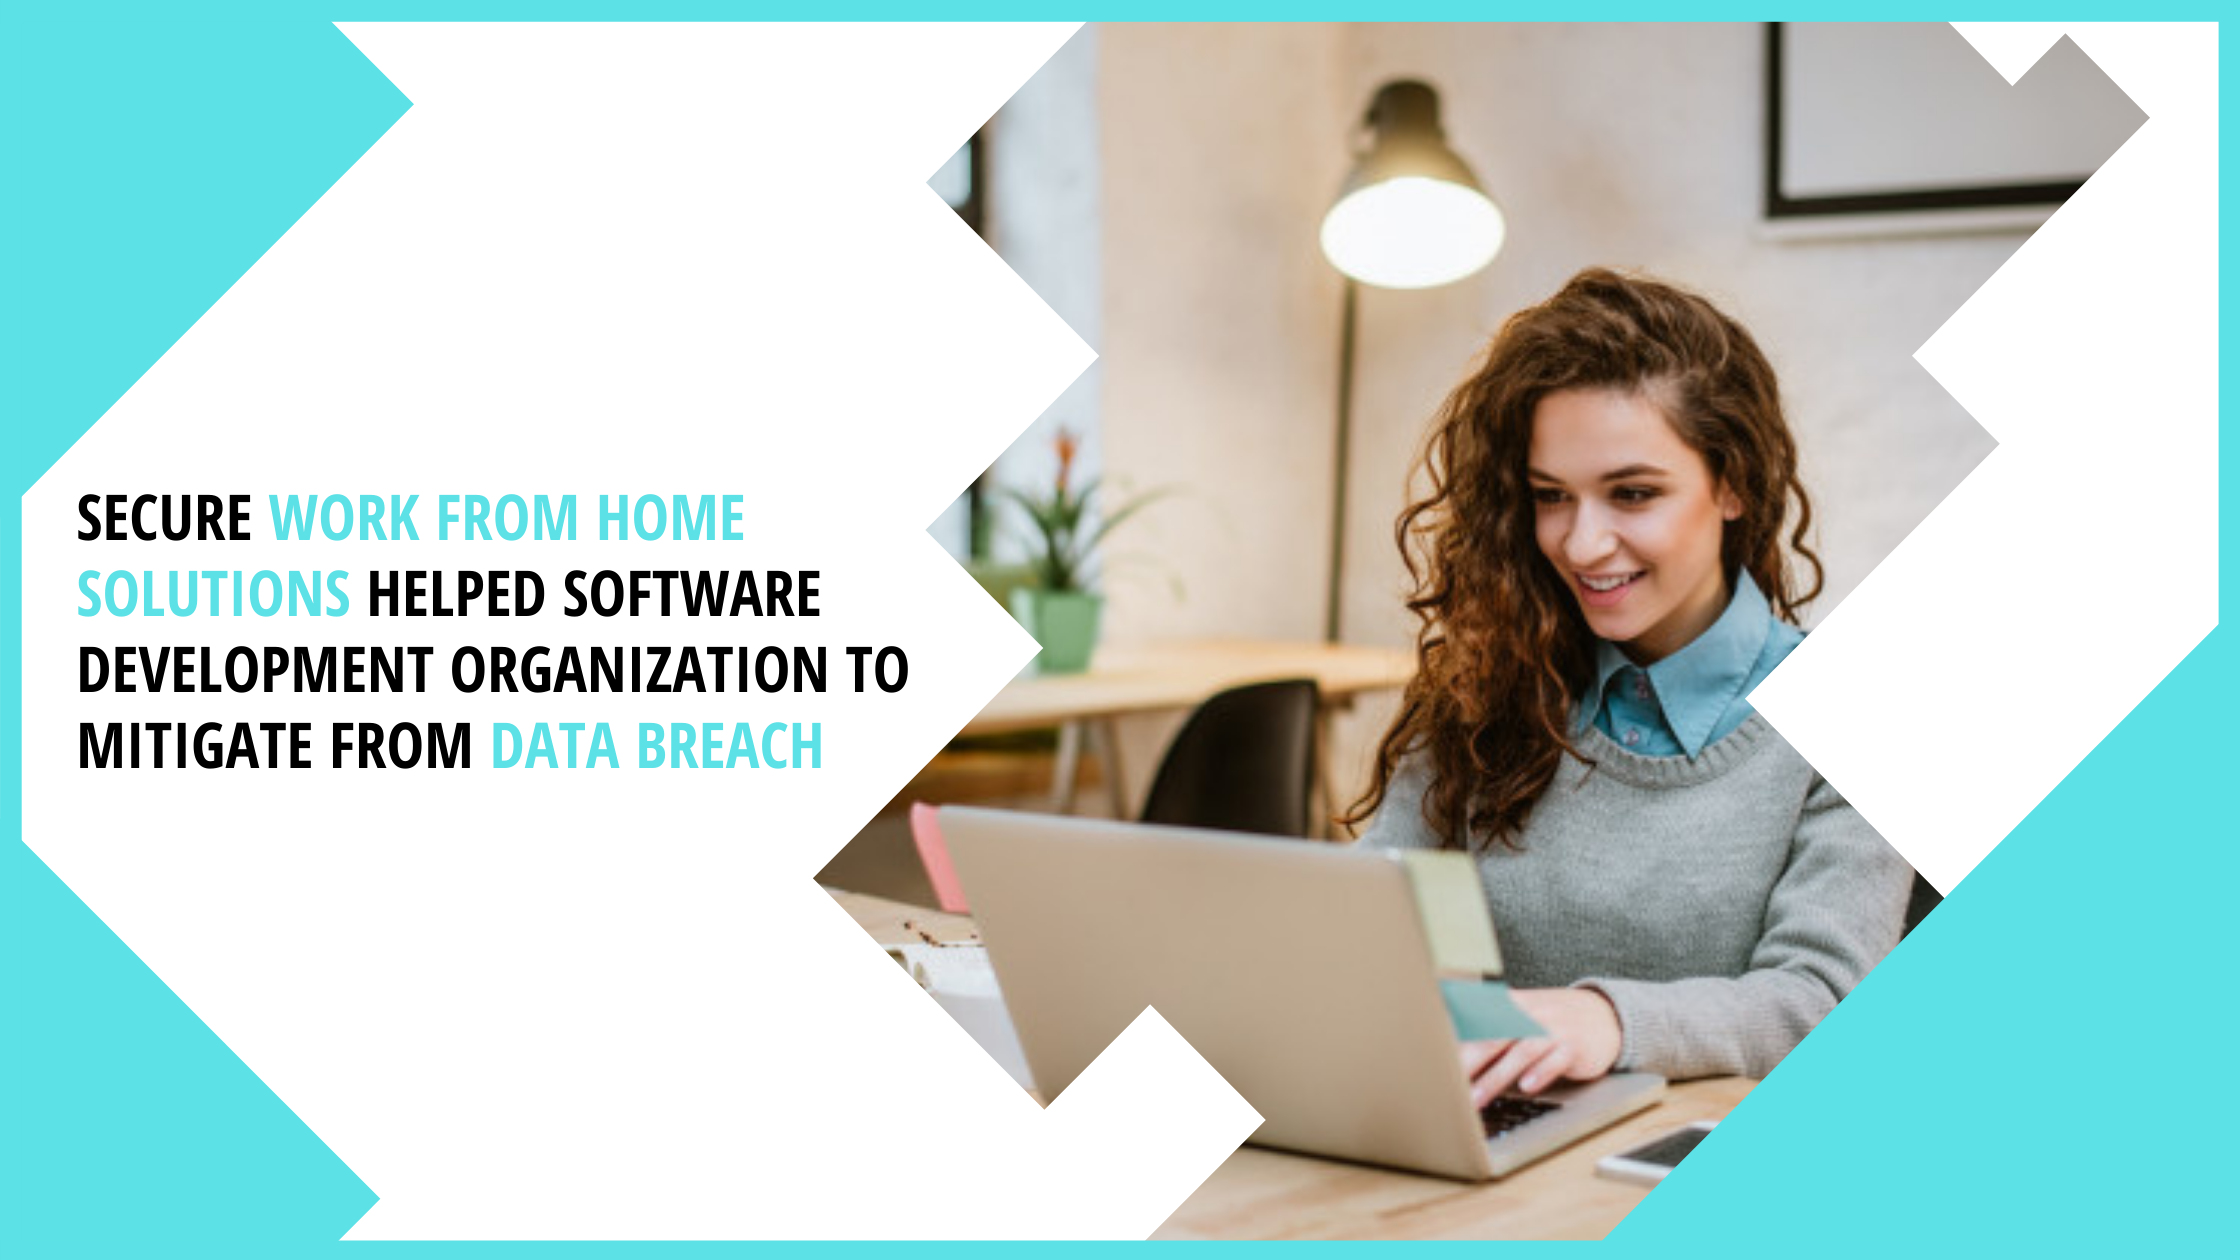 Secure Work From Home Solutions helped Software Development Organization to mitigate from data breach